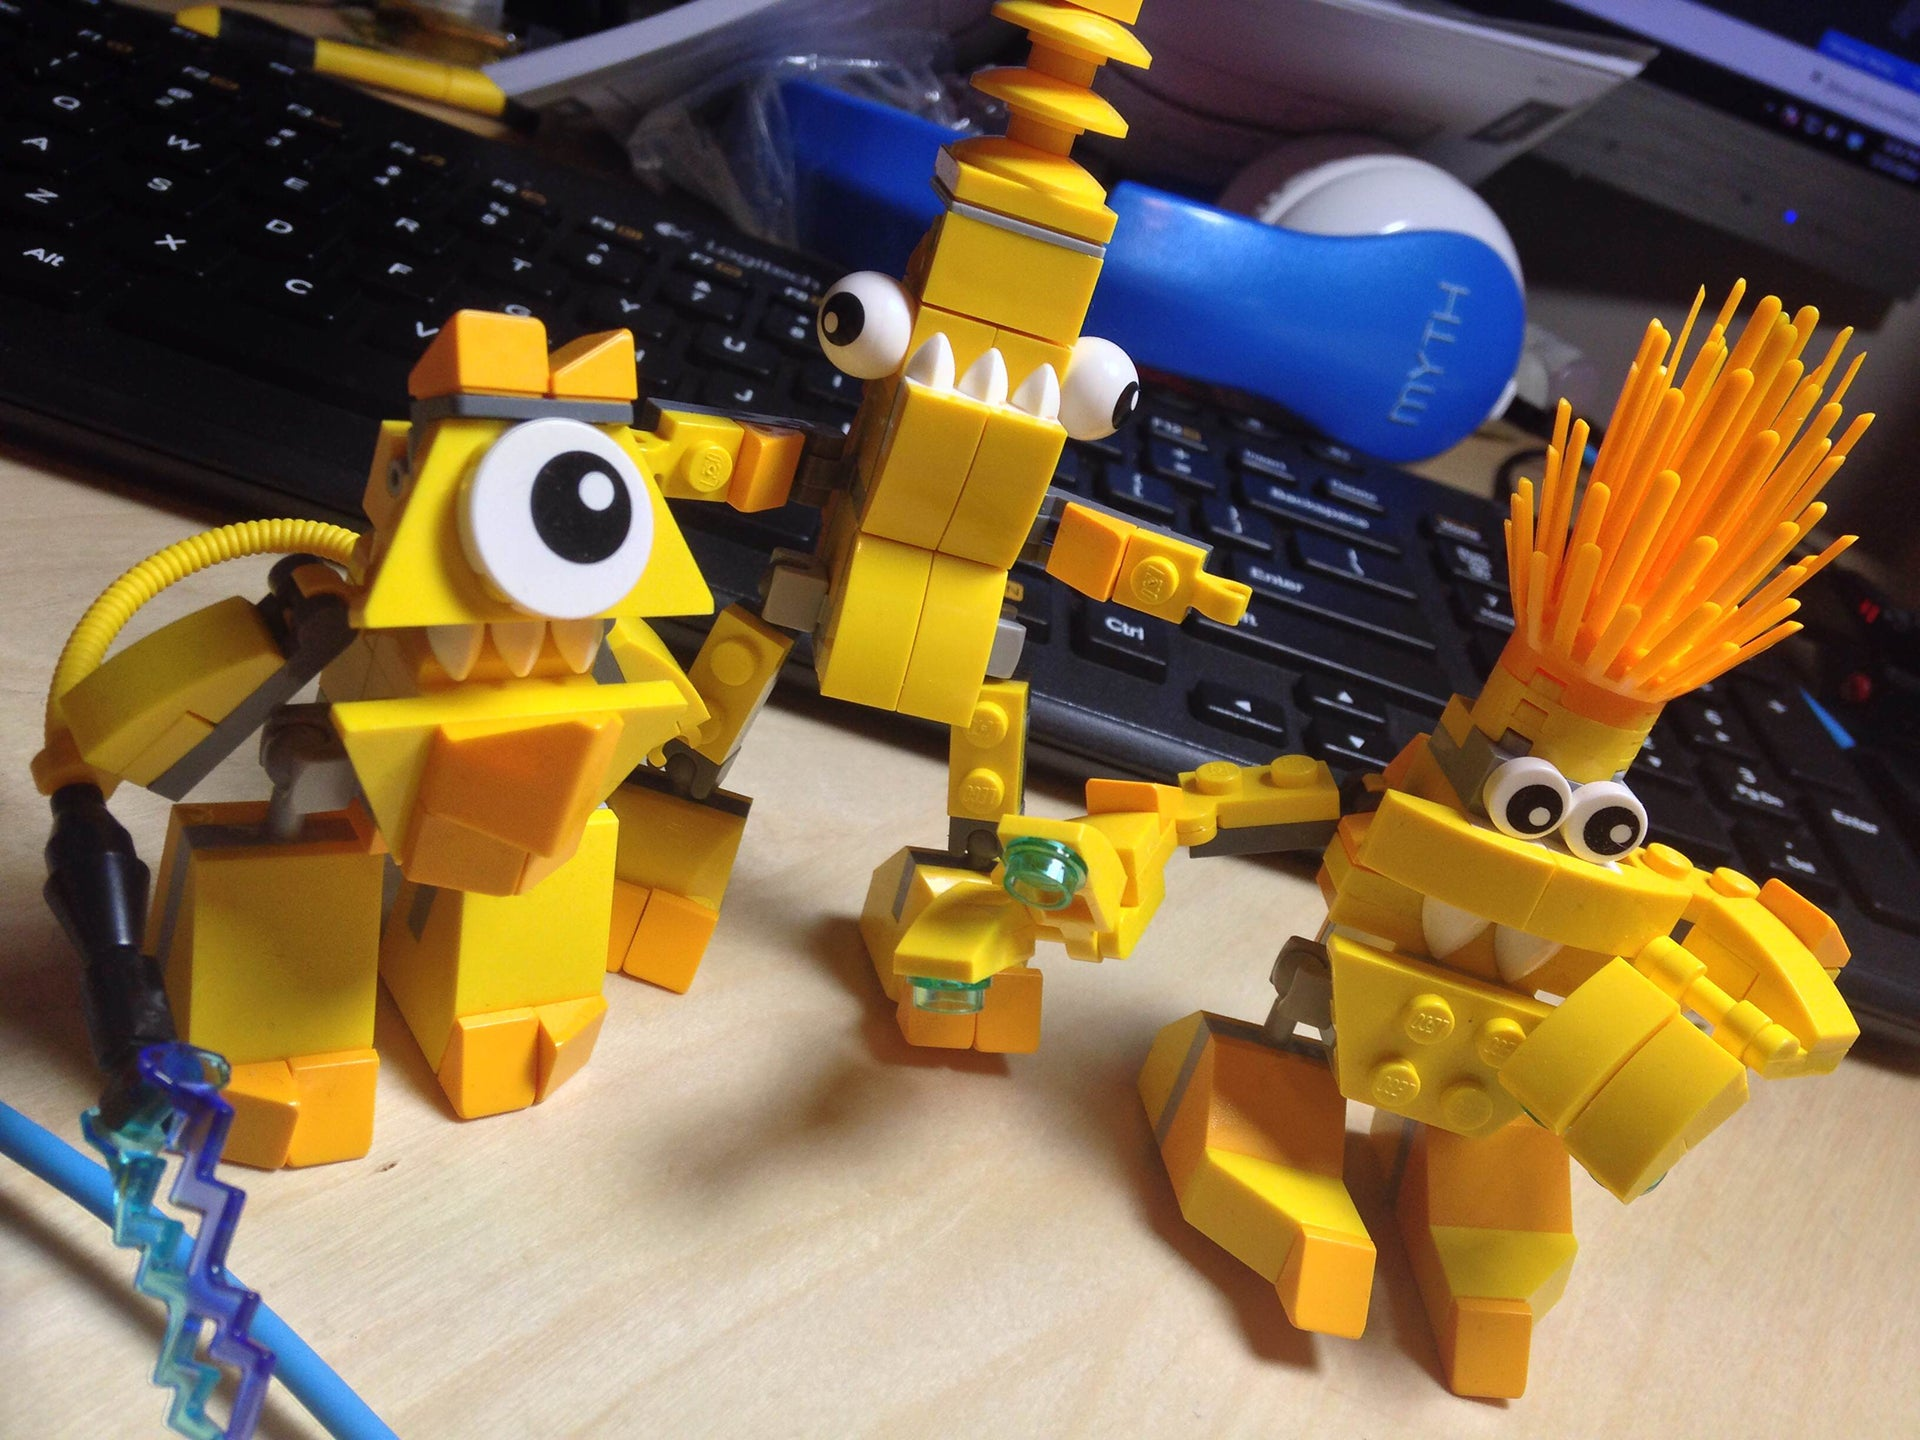 These Mixed-Up Little LEGO Creatures Are Just The Best